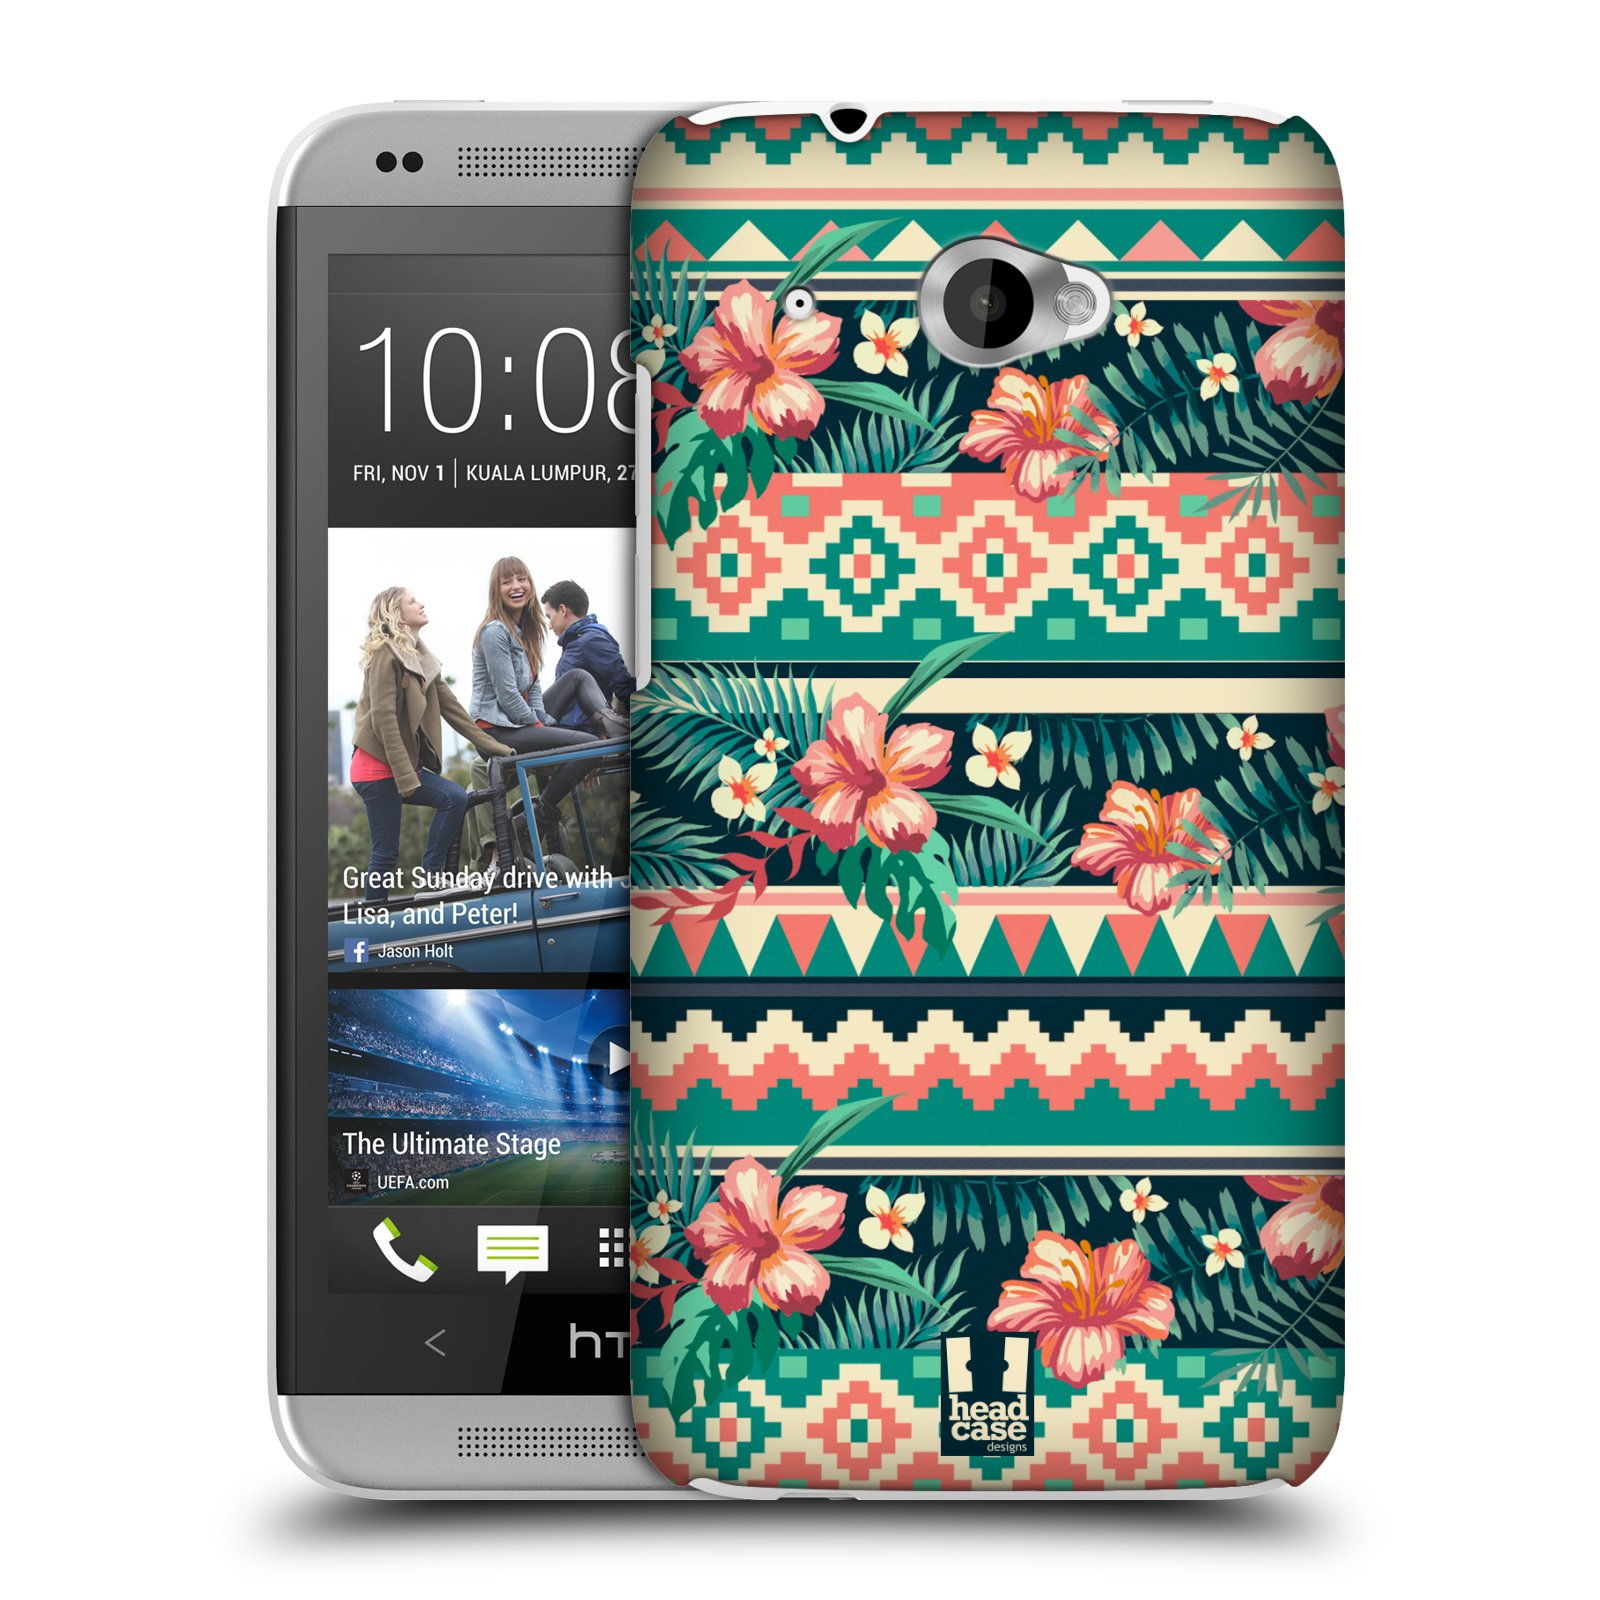 HEAD CASE DESIGNS TROPICAL PRINTS CASE COVER FOR HTC DESIRE 601 DUAL SIM